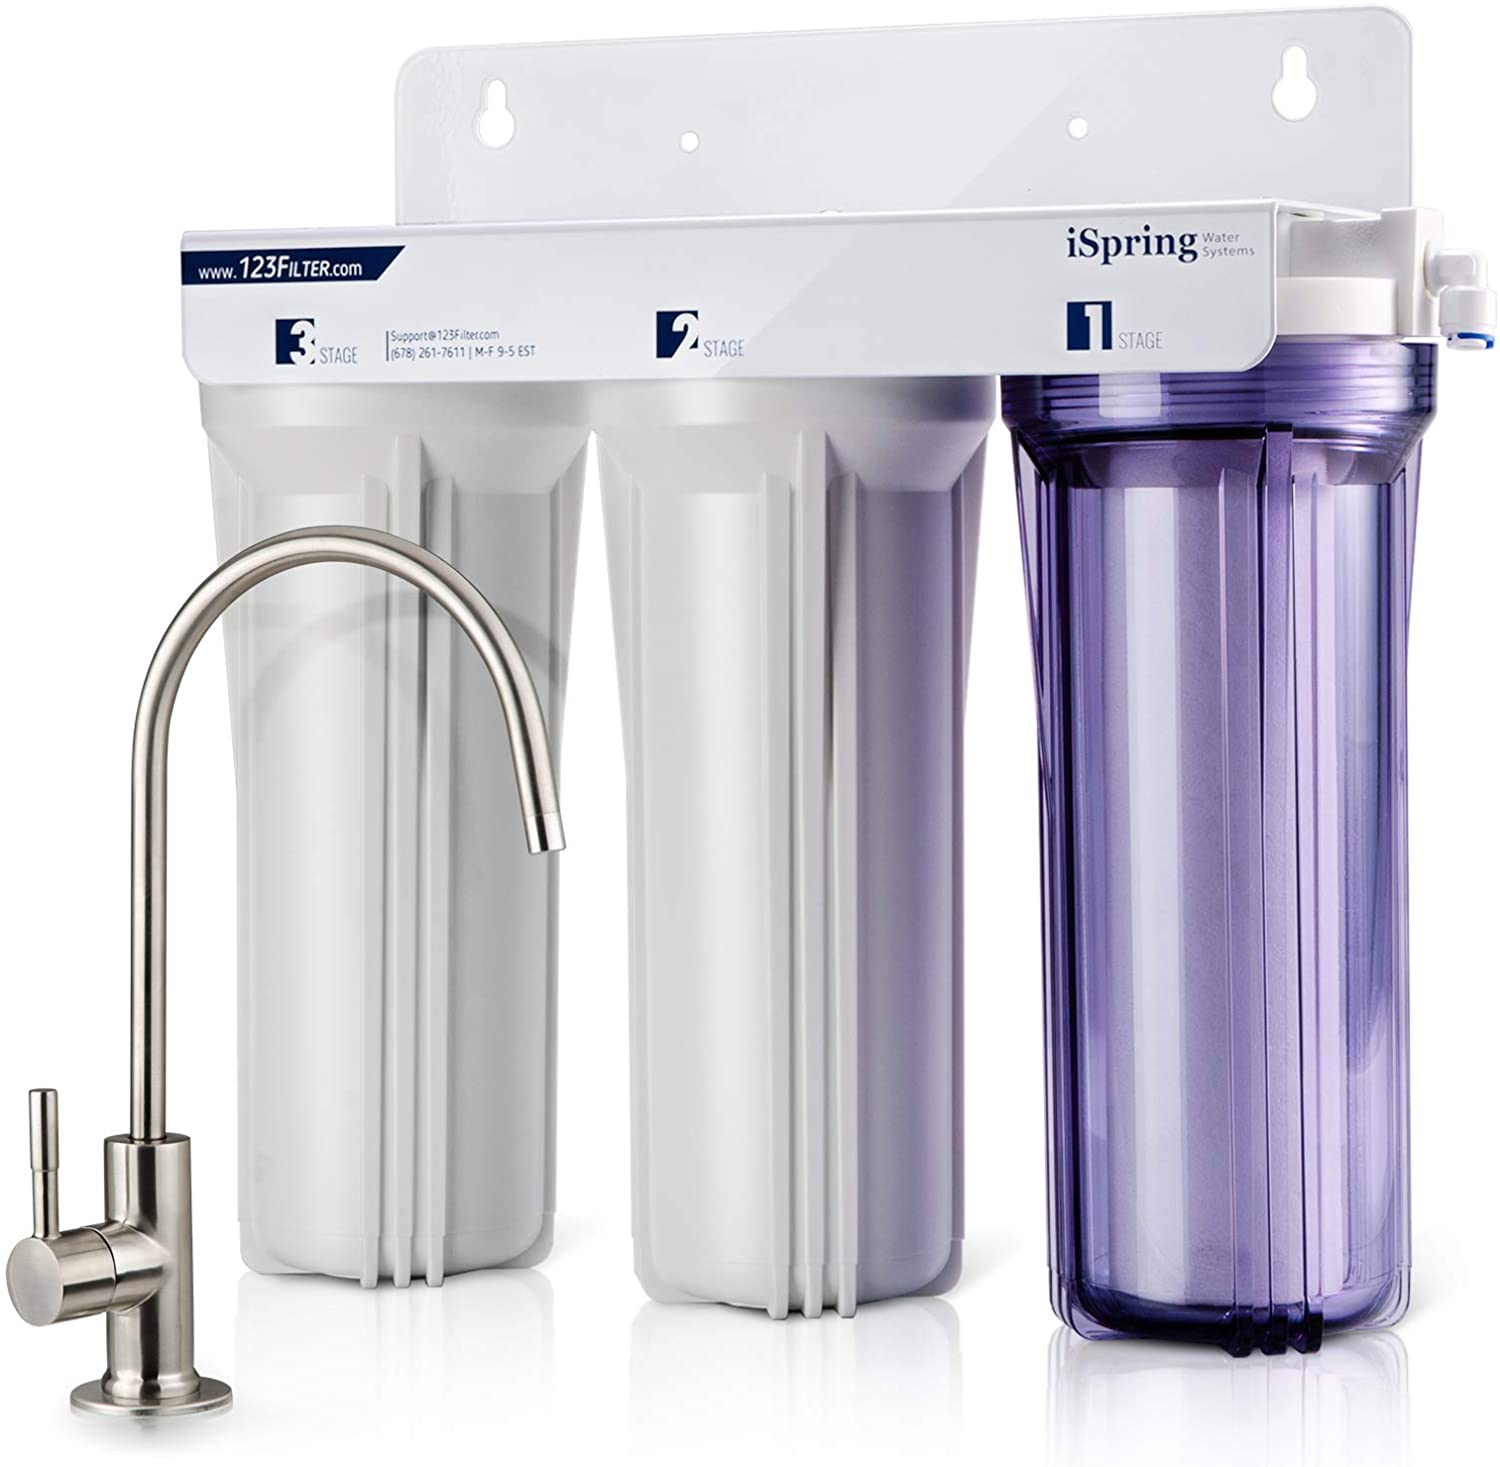 iSpring US31 3-Stage Under Sink Water Filter